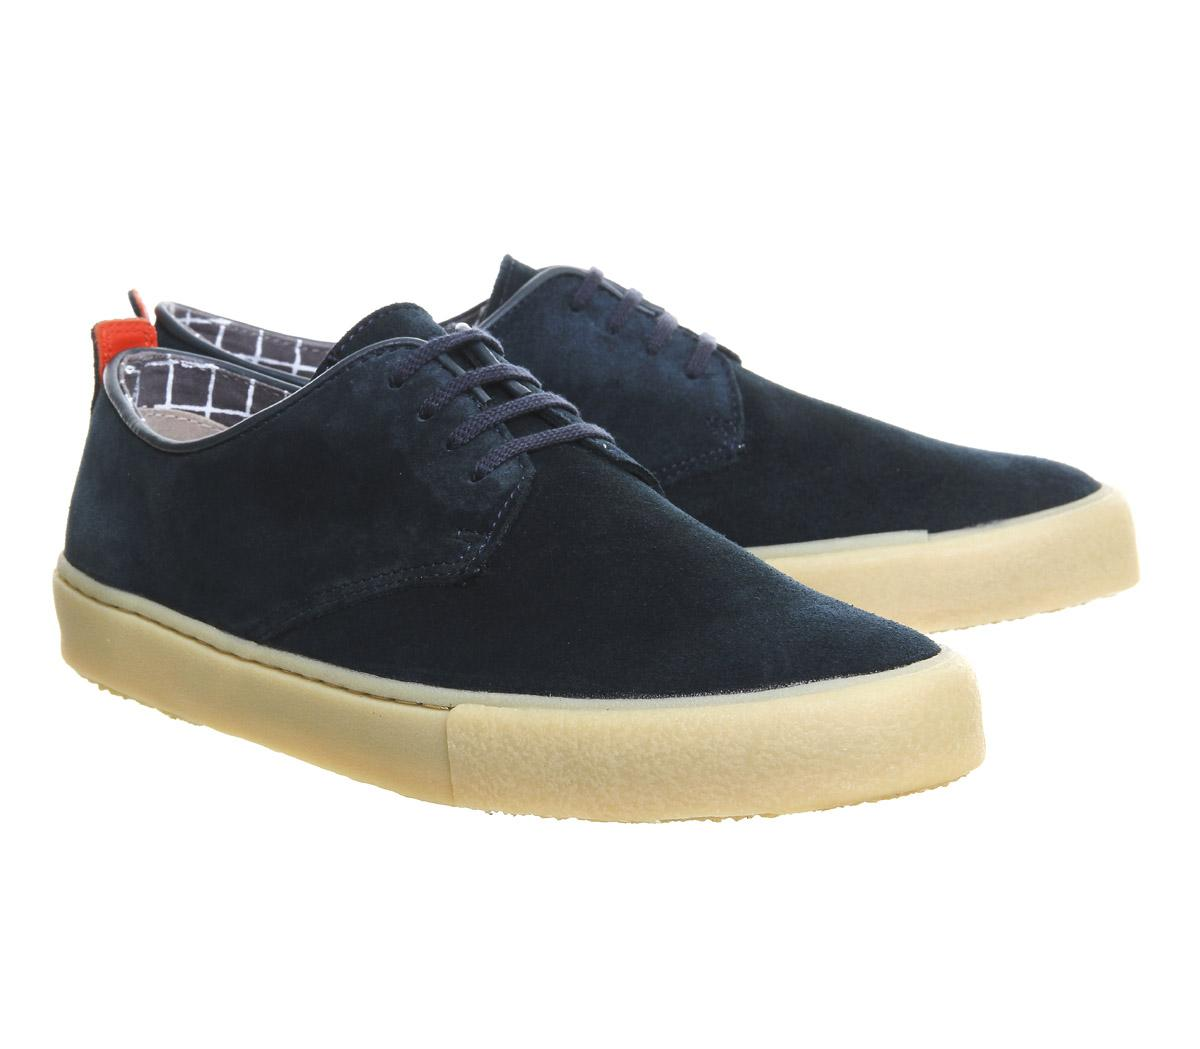 Clarks Originals Desert Vulclo Navy Suede in B46